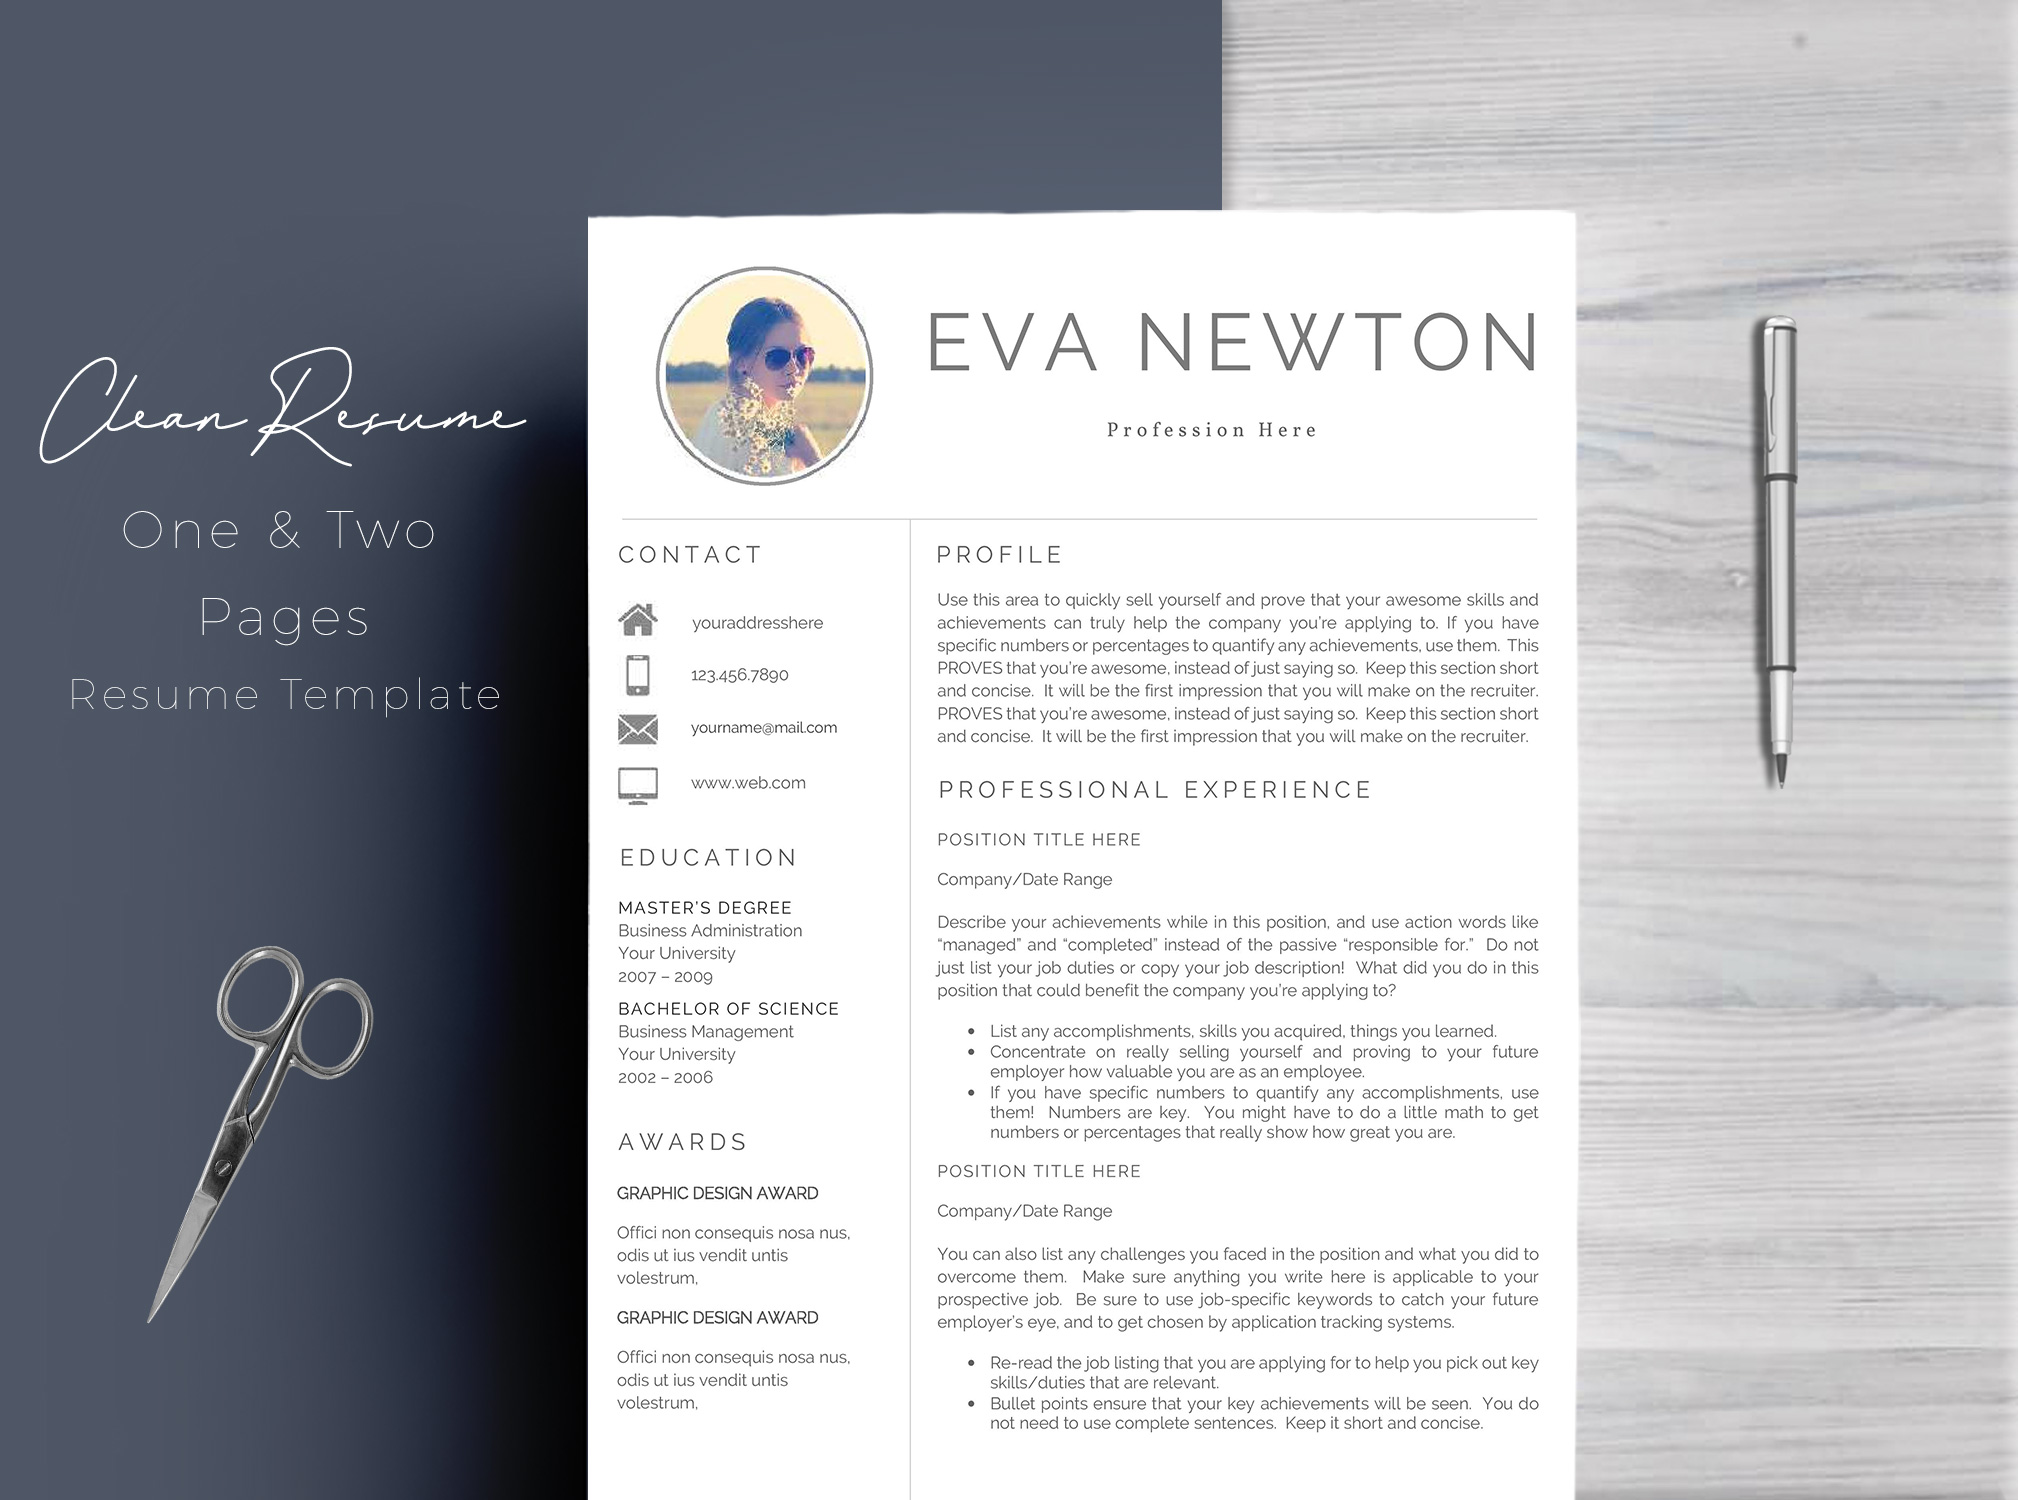 Resume Template 4 Pages example image 1